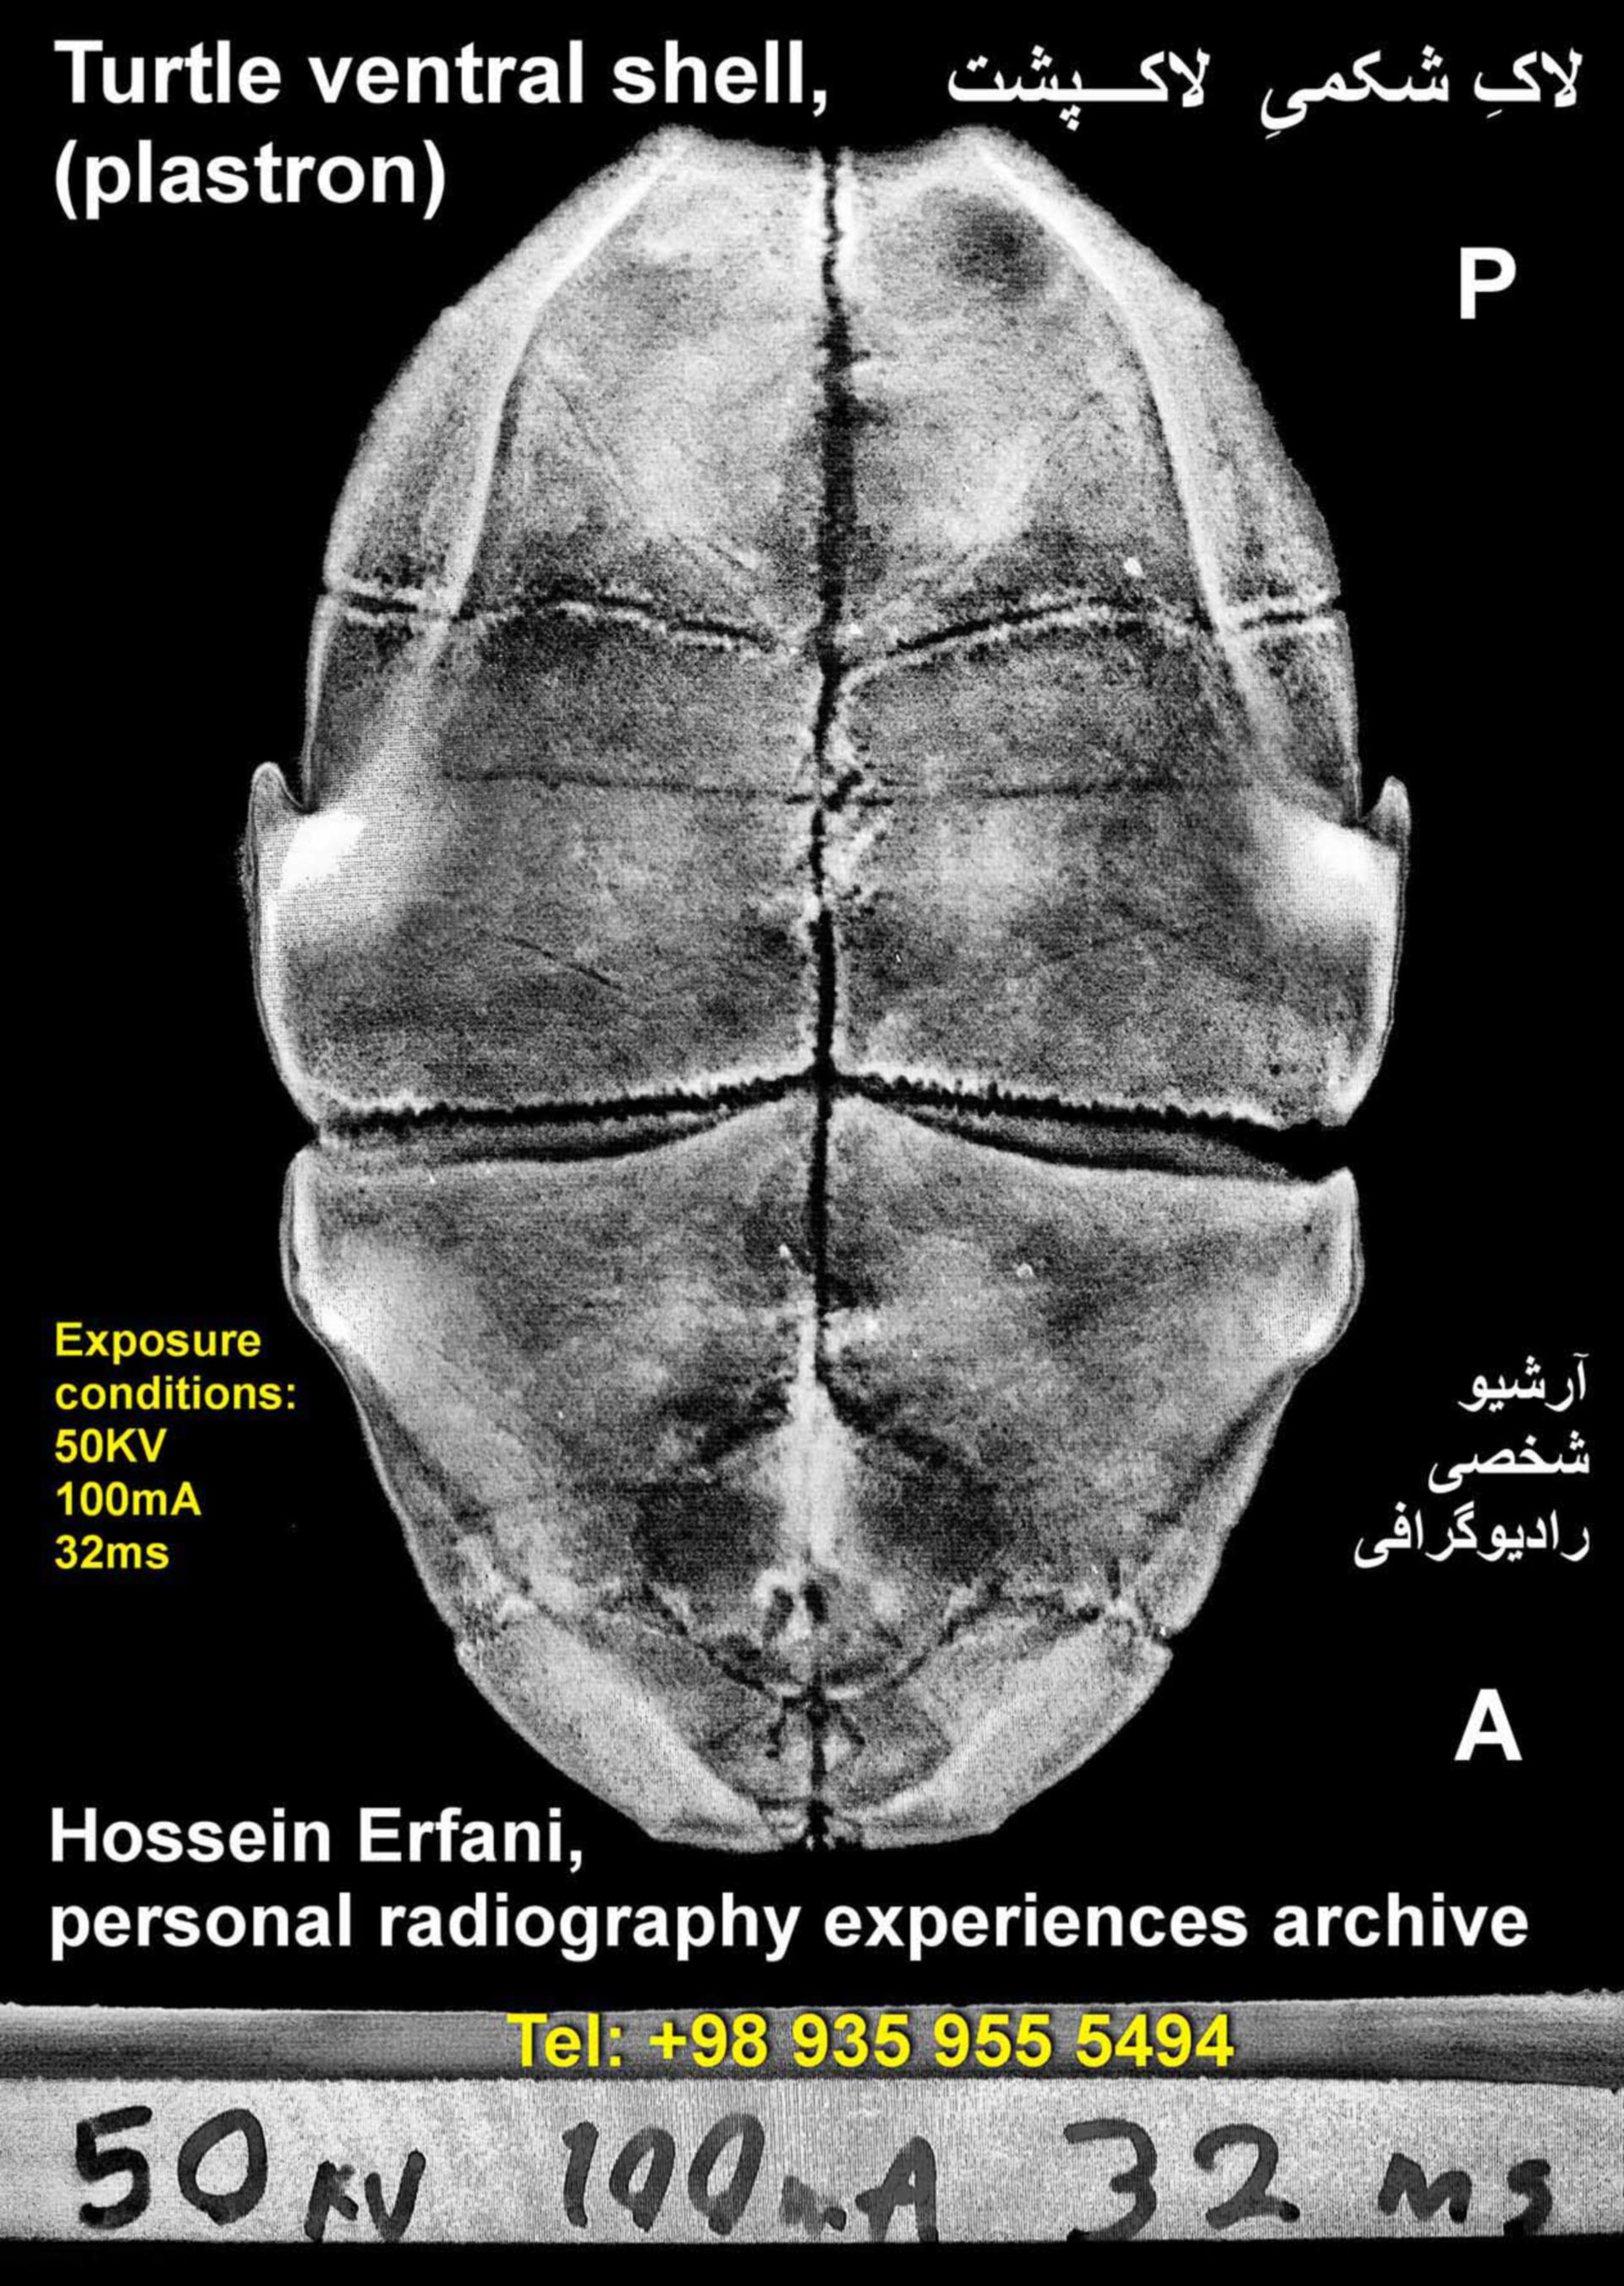 Turtle isolated ventral shell (plastron) radiography;  personal radiography experience